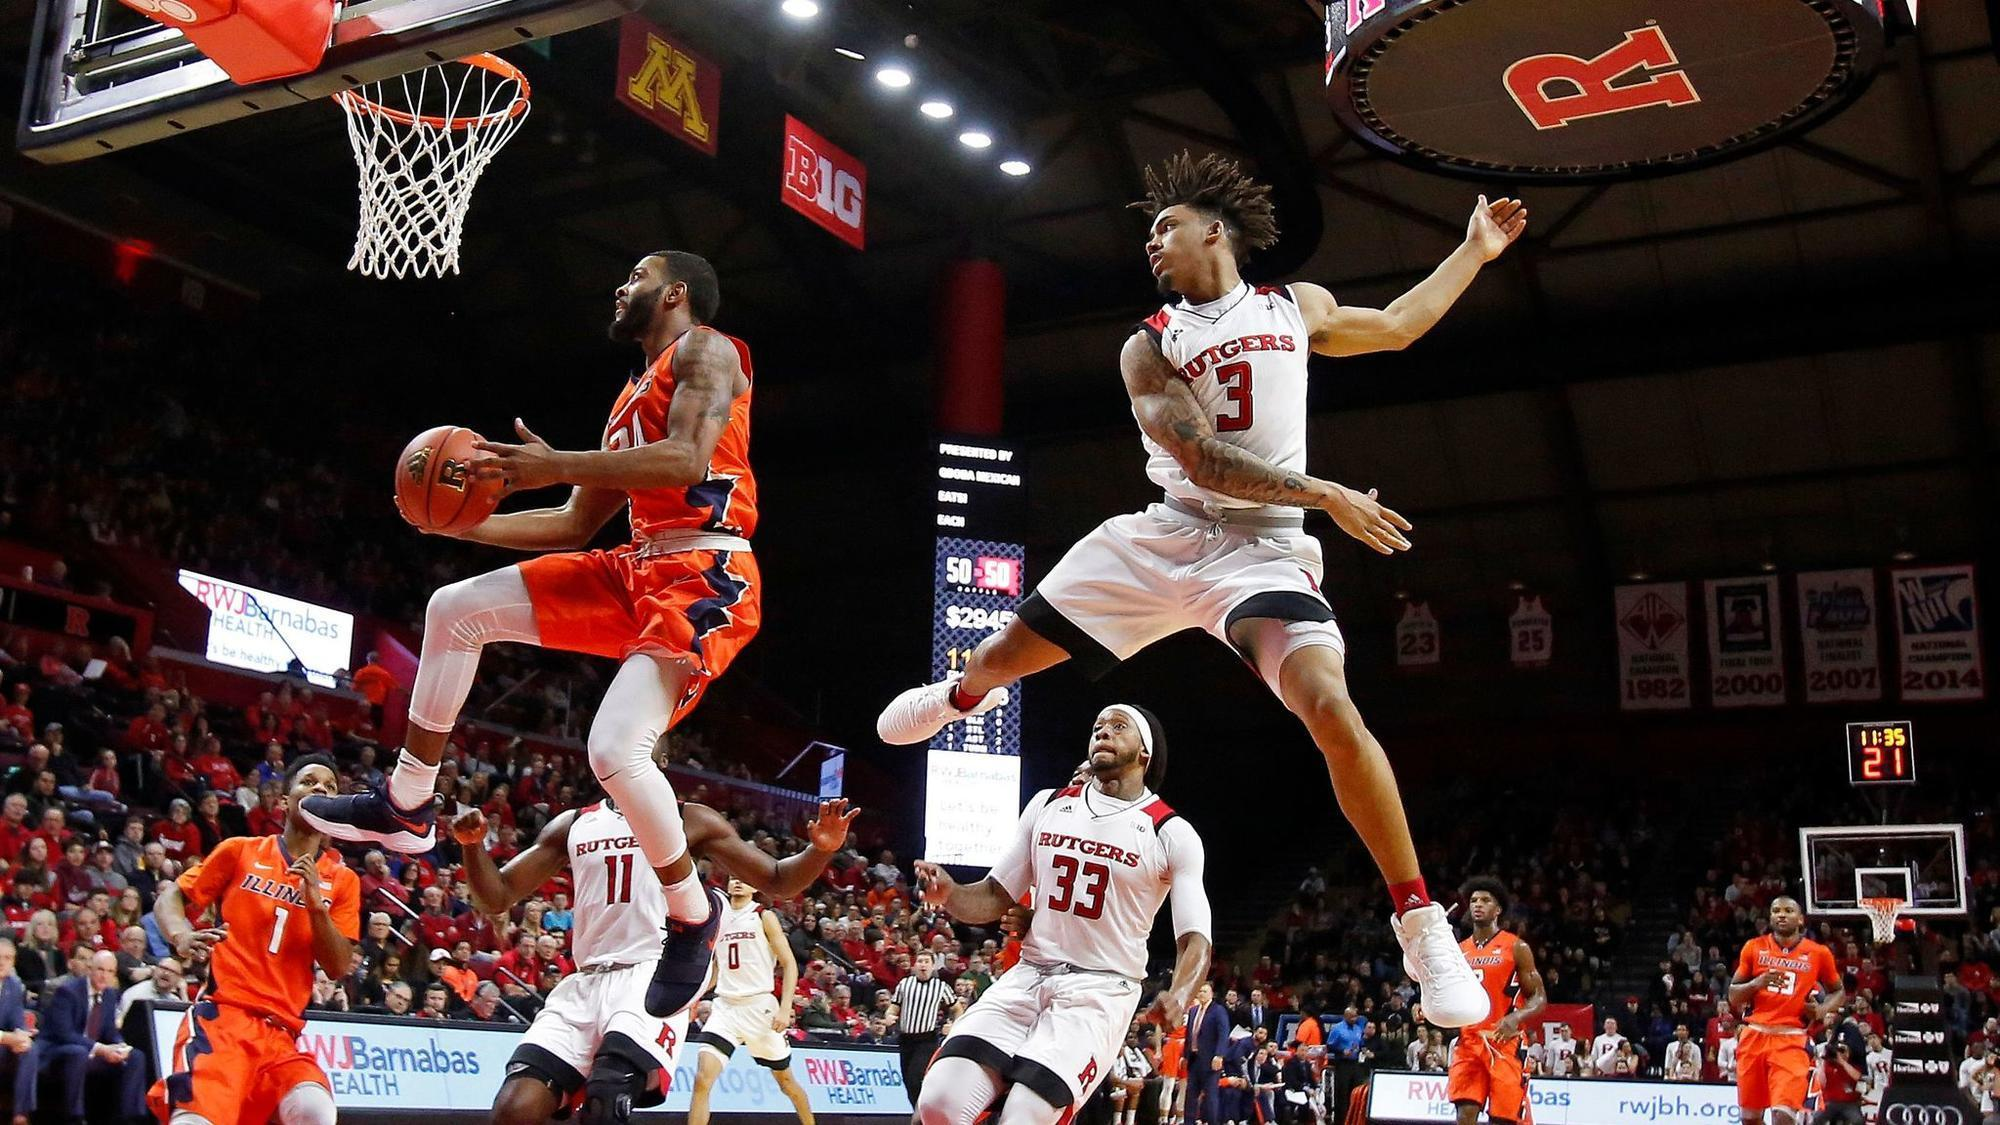 Ct-illinois-rutgers-college-basketball-20180225